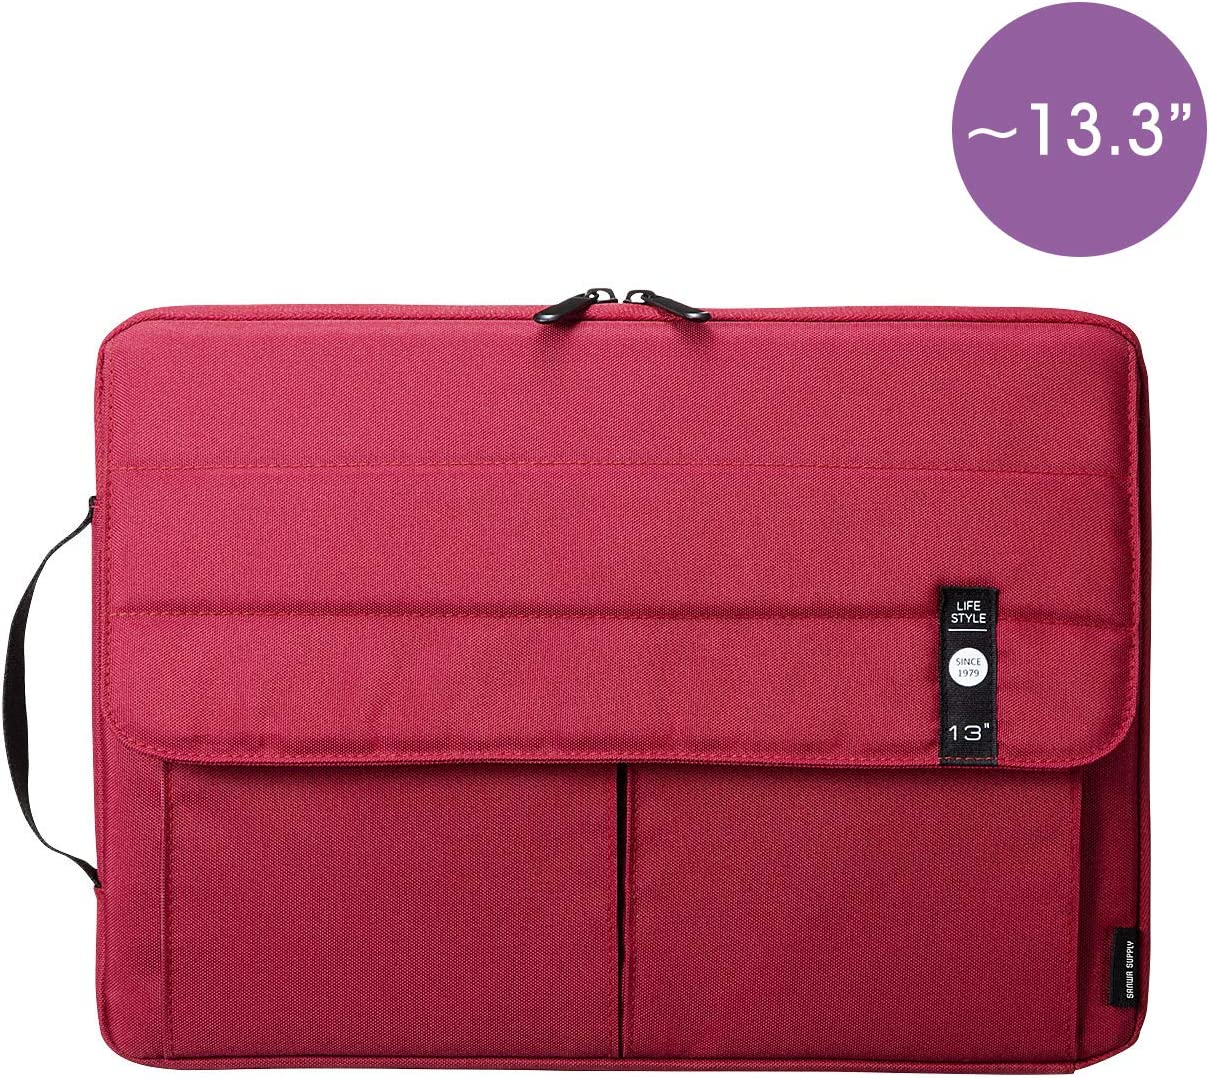 SANWA (Japan Brand) Laptop Computer Sleeve Case, Sleeve Bag Compatible with 11 inch MacBook Pro, MacBook Air, Pad,HP, Dell, Notebook Computer, Water Resistance Case Cover with Pocket, Red